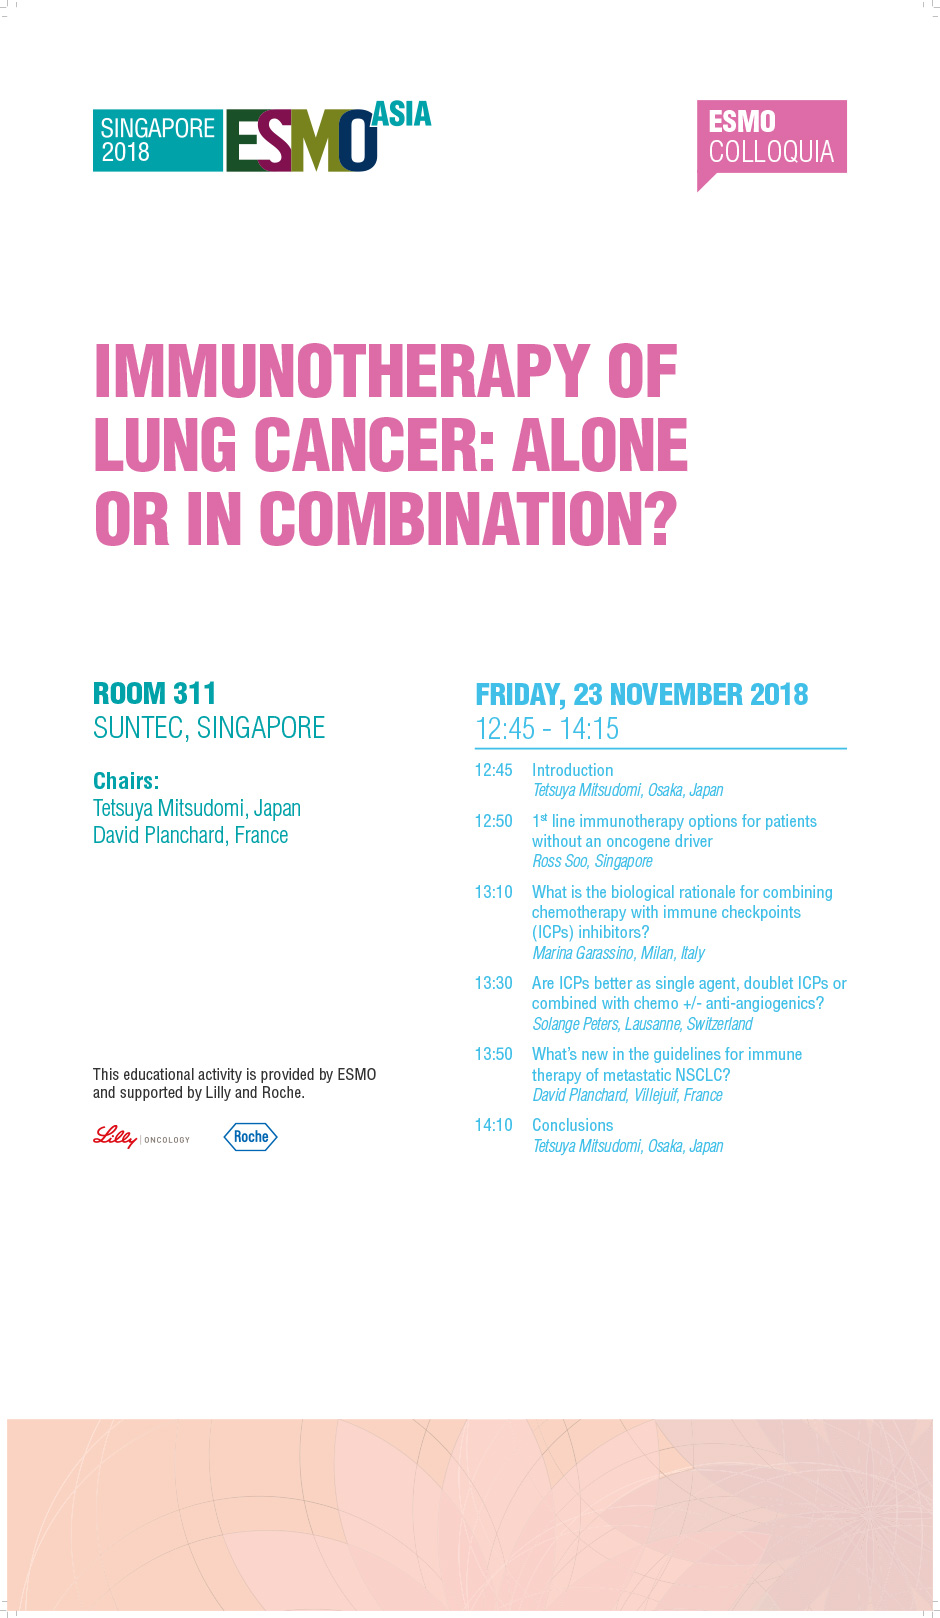 Immunotherapy of Lung Cancer: Alone or in Combination?